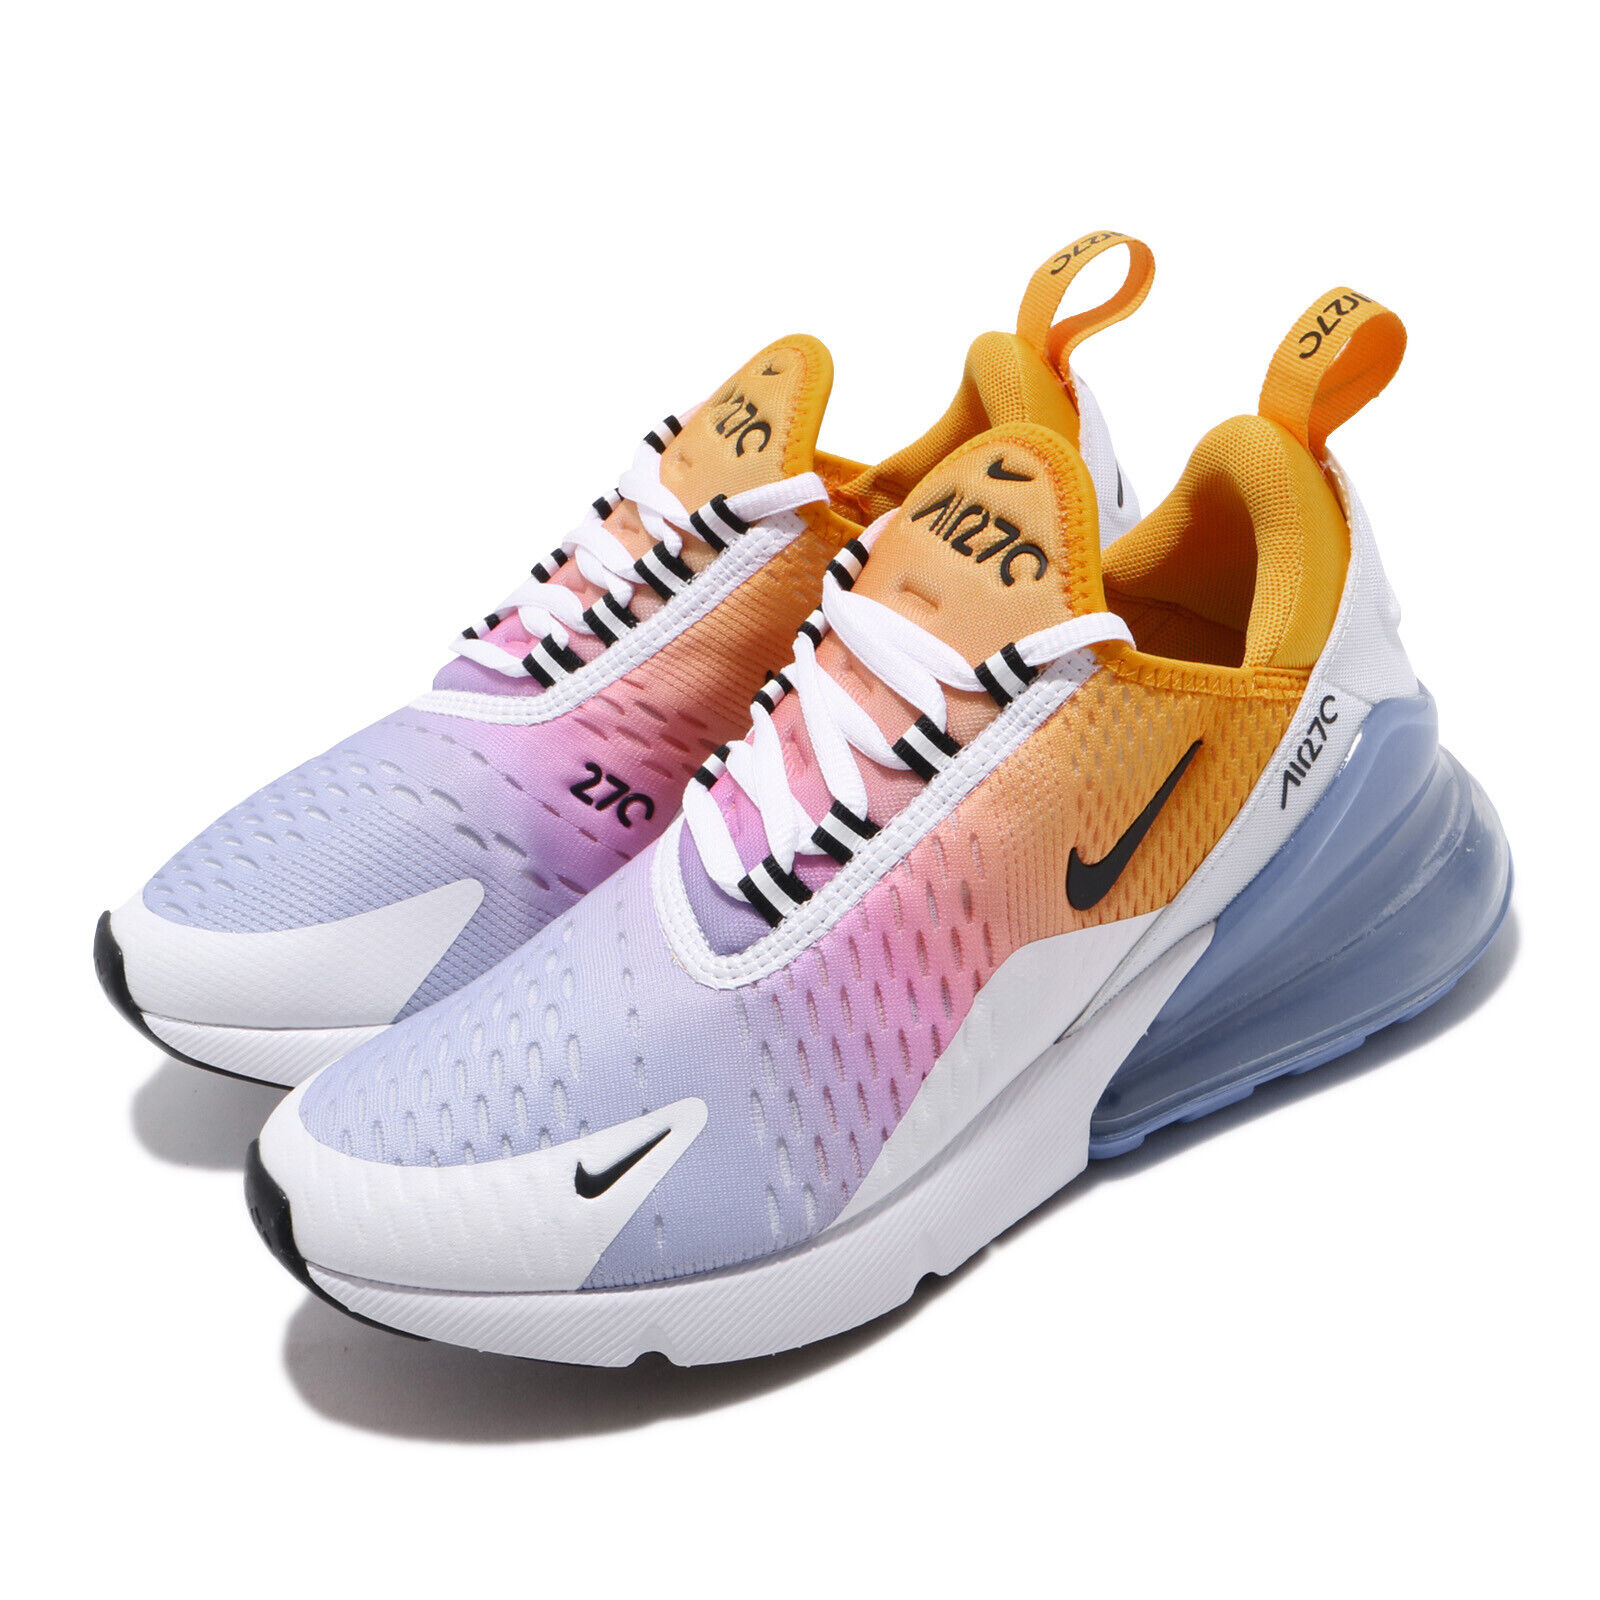 Nike Wmns Air Max 270 gold  bluee Pink Gradient Womens Running shoes AH6789-702  in stock